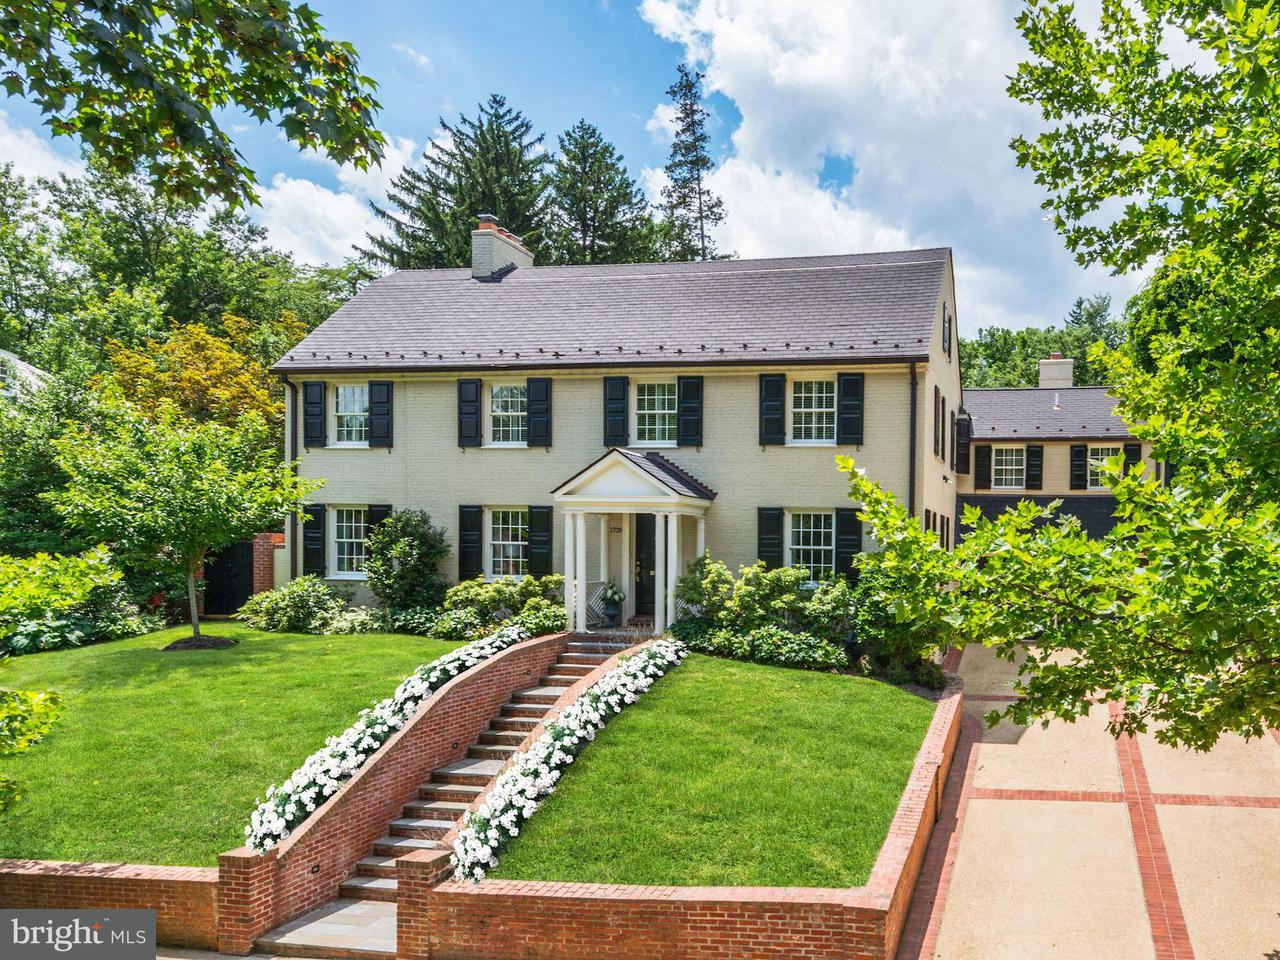 Single Family Home for Sale at 1726 HOBAN RD NW 1726 HOBAN RD NW Washington, District Of Columbia 20007 United States